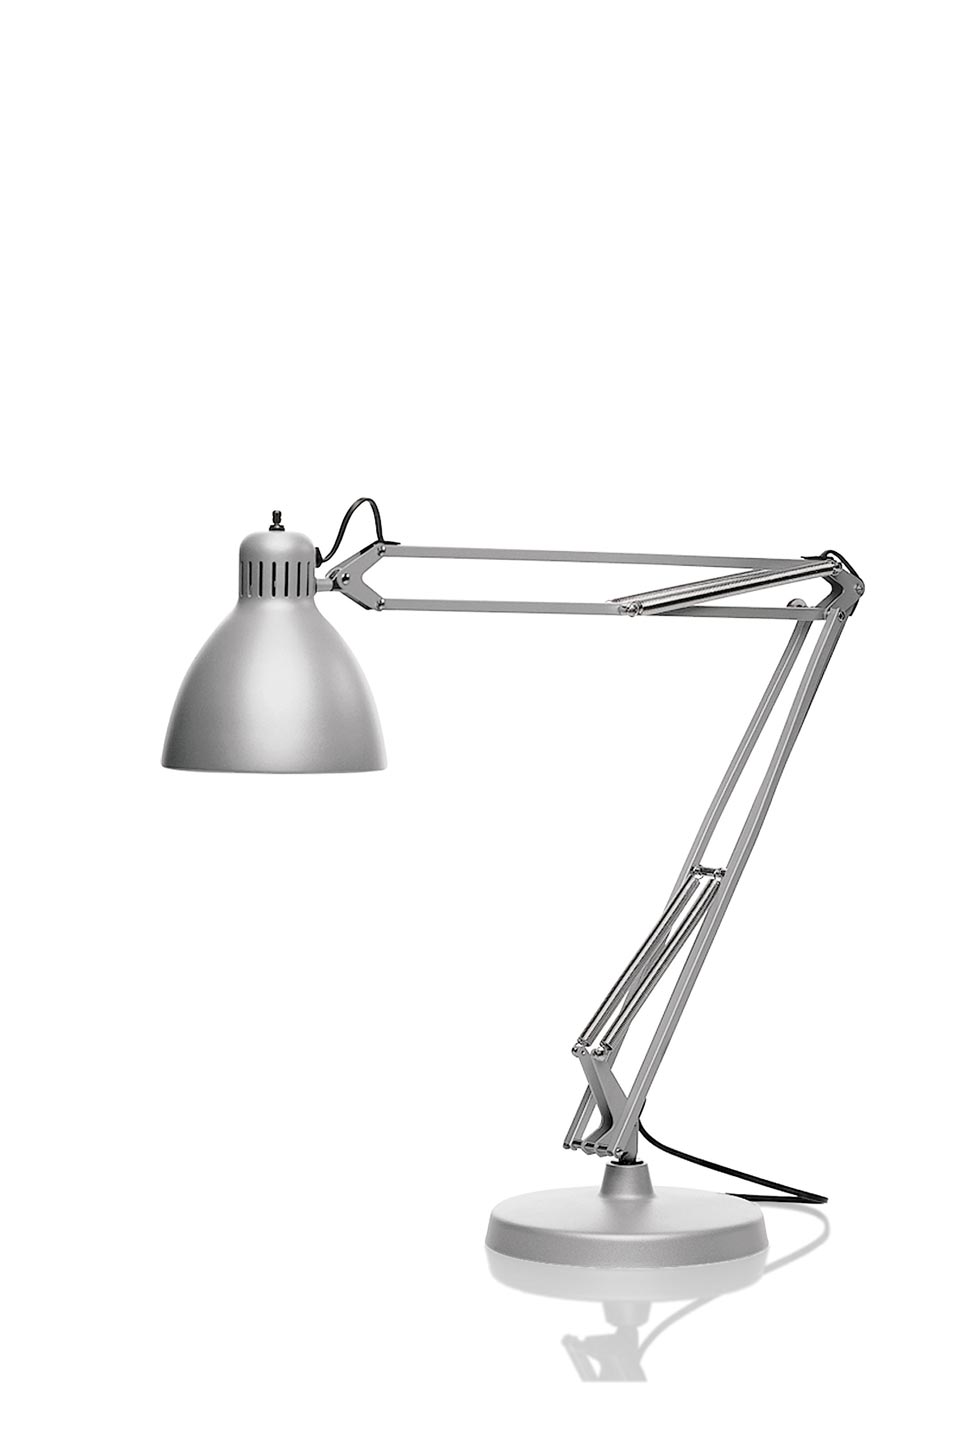 lampe d architecte fabulous lampe anglepoise with lampe d. Black Bedroom Furniture Sets. Home Design Ideas